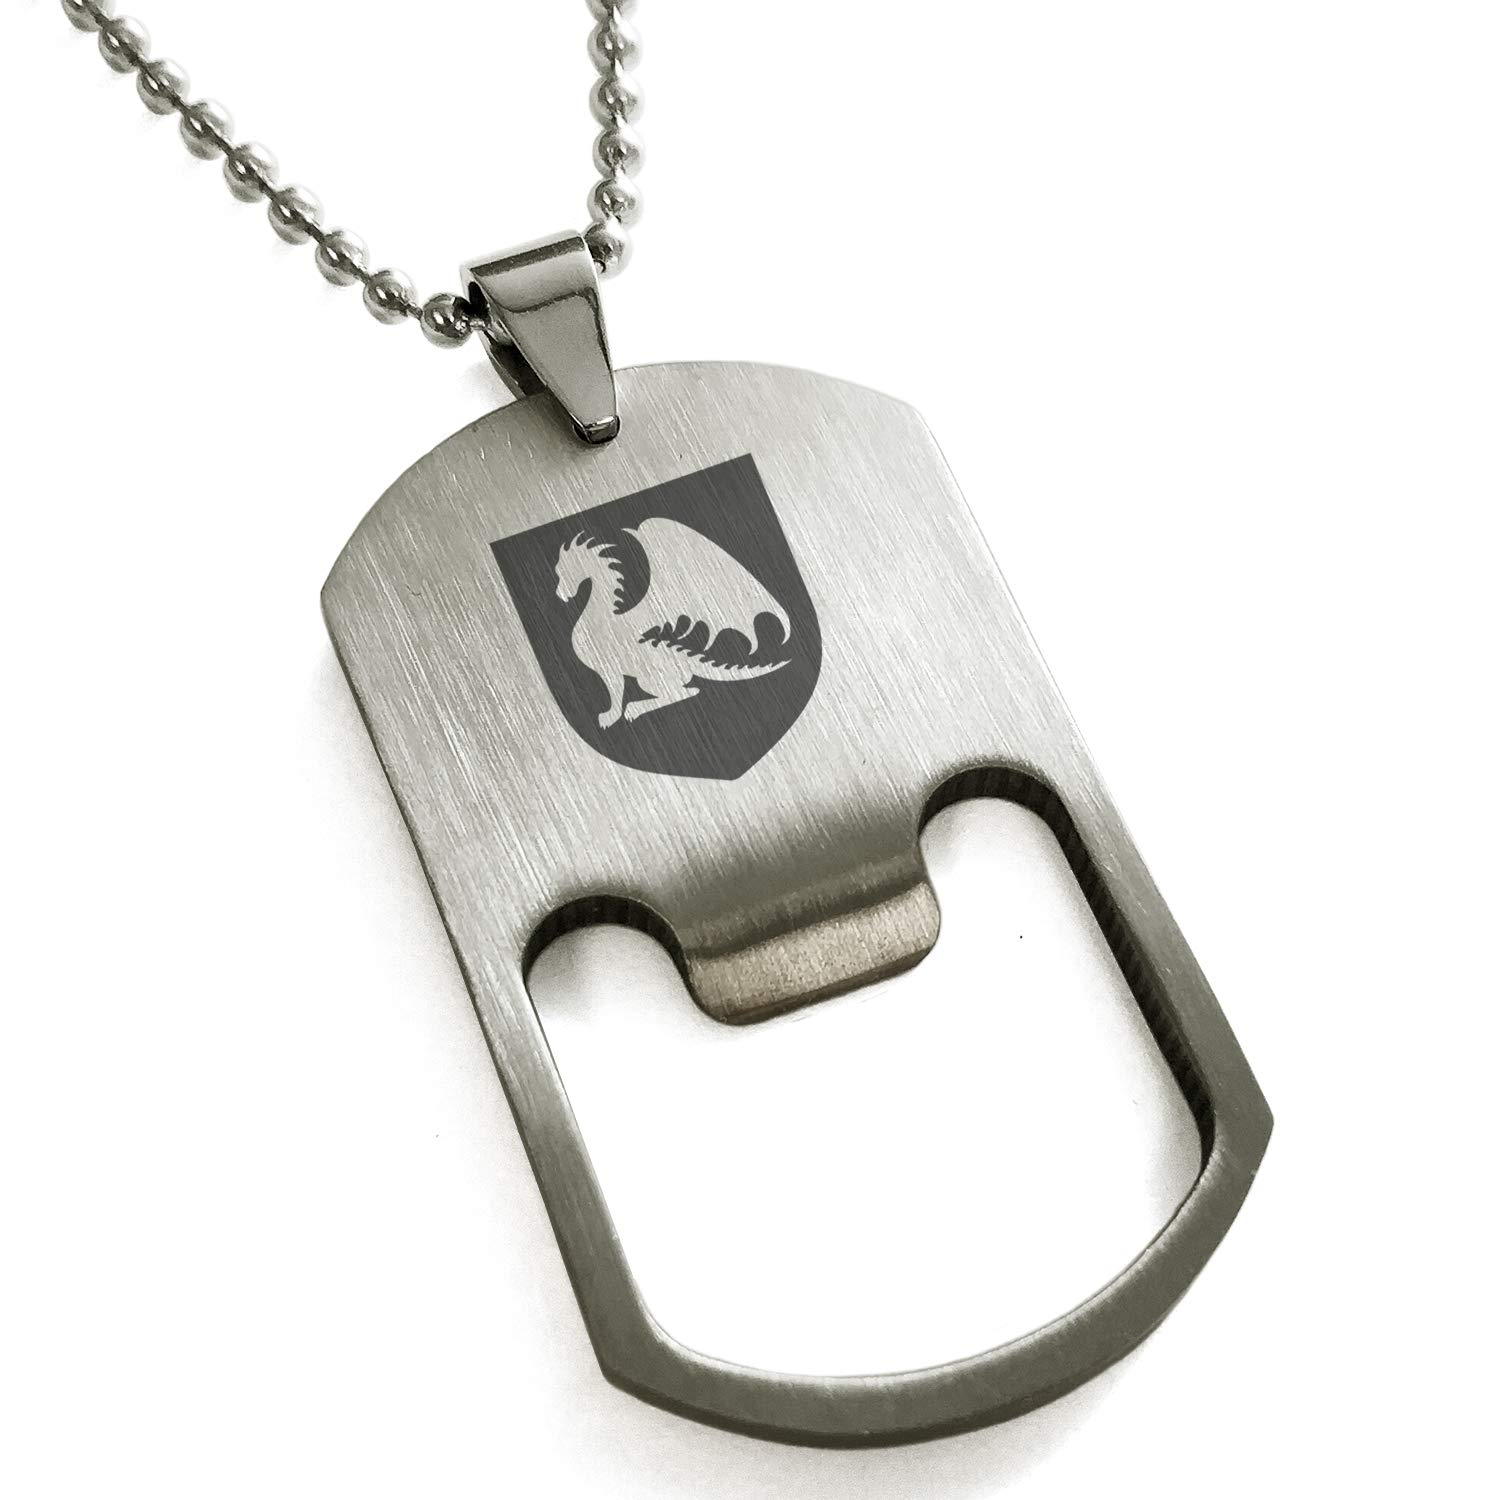 Tioneer Stainless Steel Dragon Guardian Coat of Arms Shield Engraved Bottle Opener Dog Tag Pendant Necklace